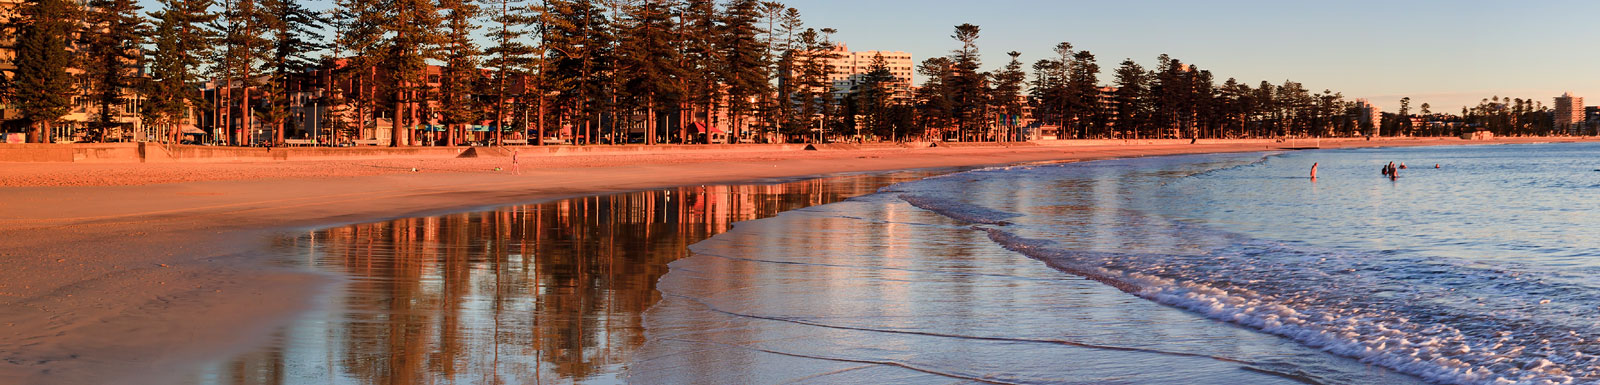 manly-banner-05